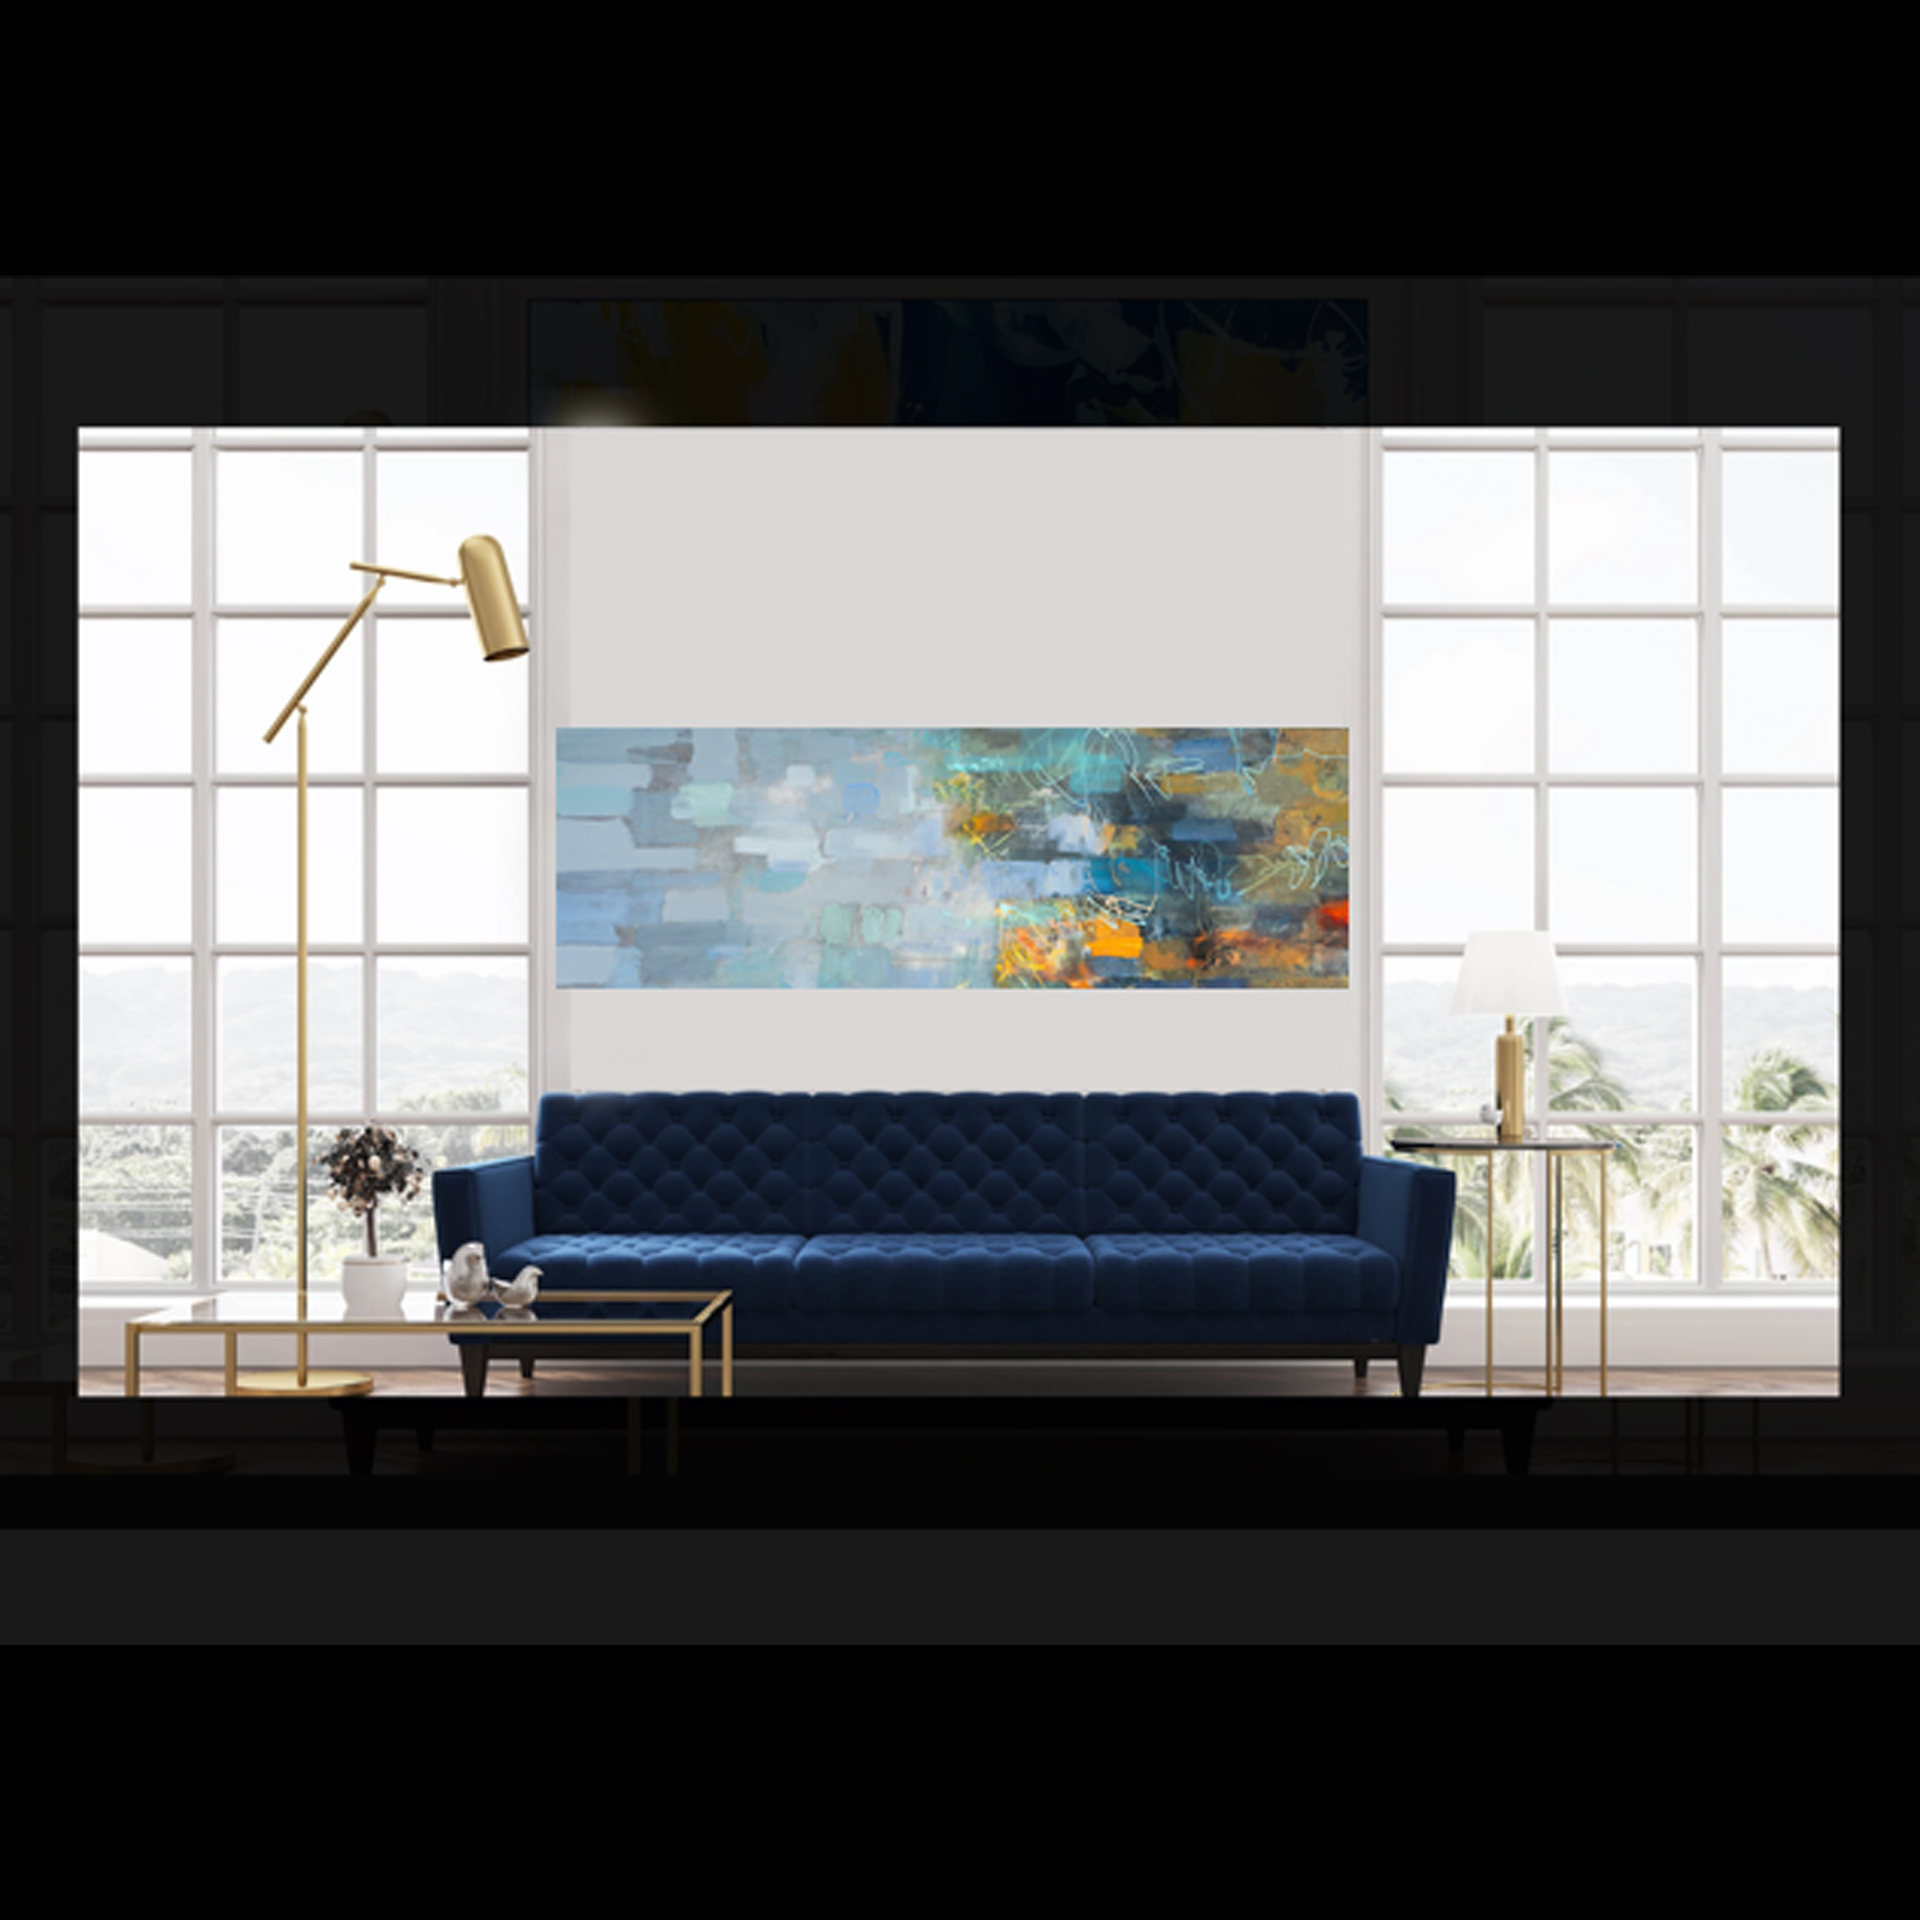 BLUE ARABESQUE #1 24x72 giclee on canvas $900